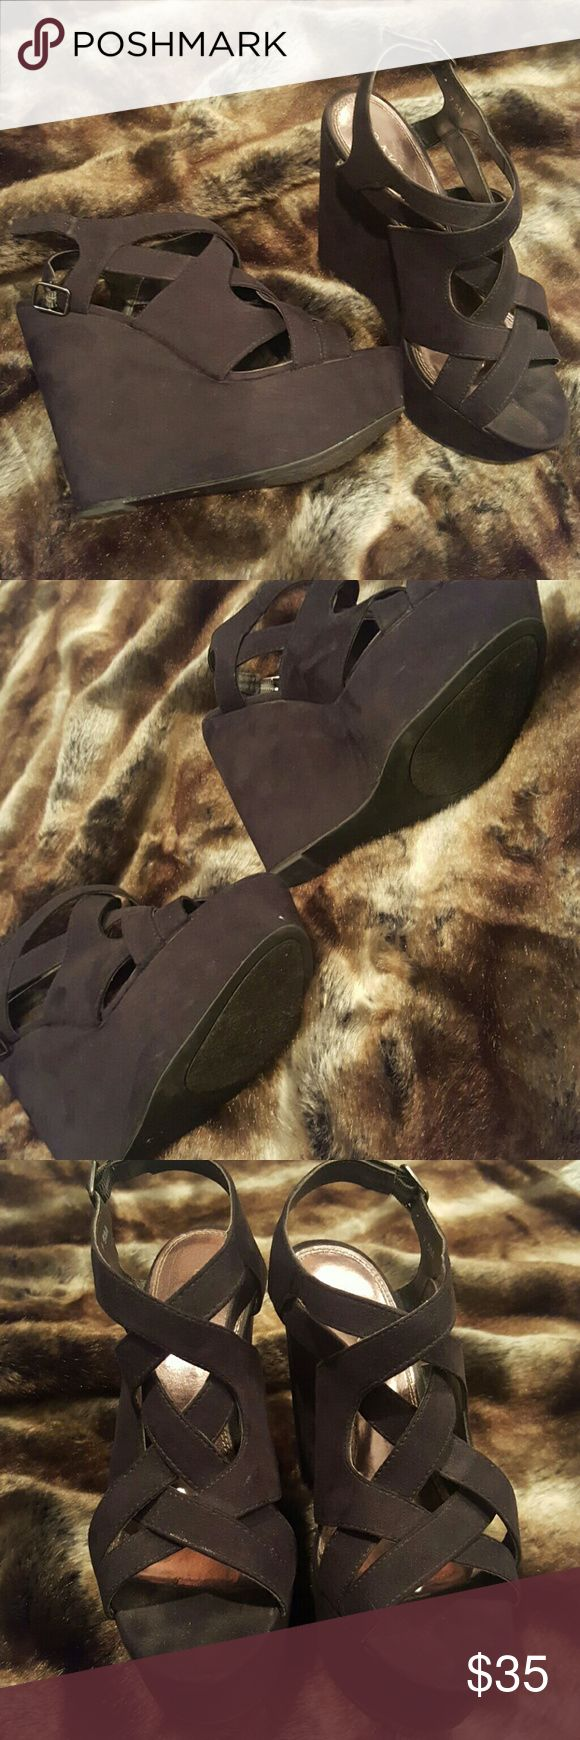 Black platform strappy wedges Bakers brand. Black suede material. Strappy platform wedges. Great condition. Not worn many times. Bakers Shoes Wedges